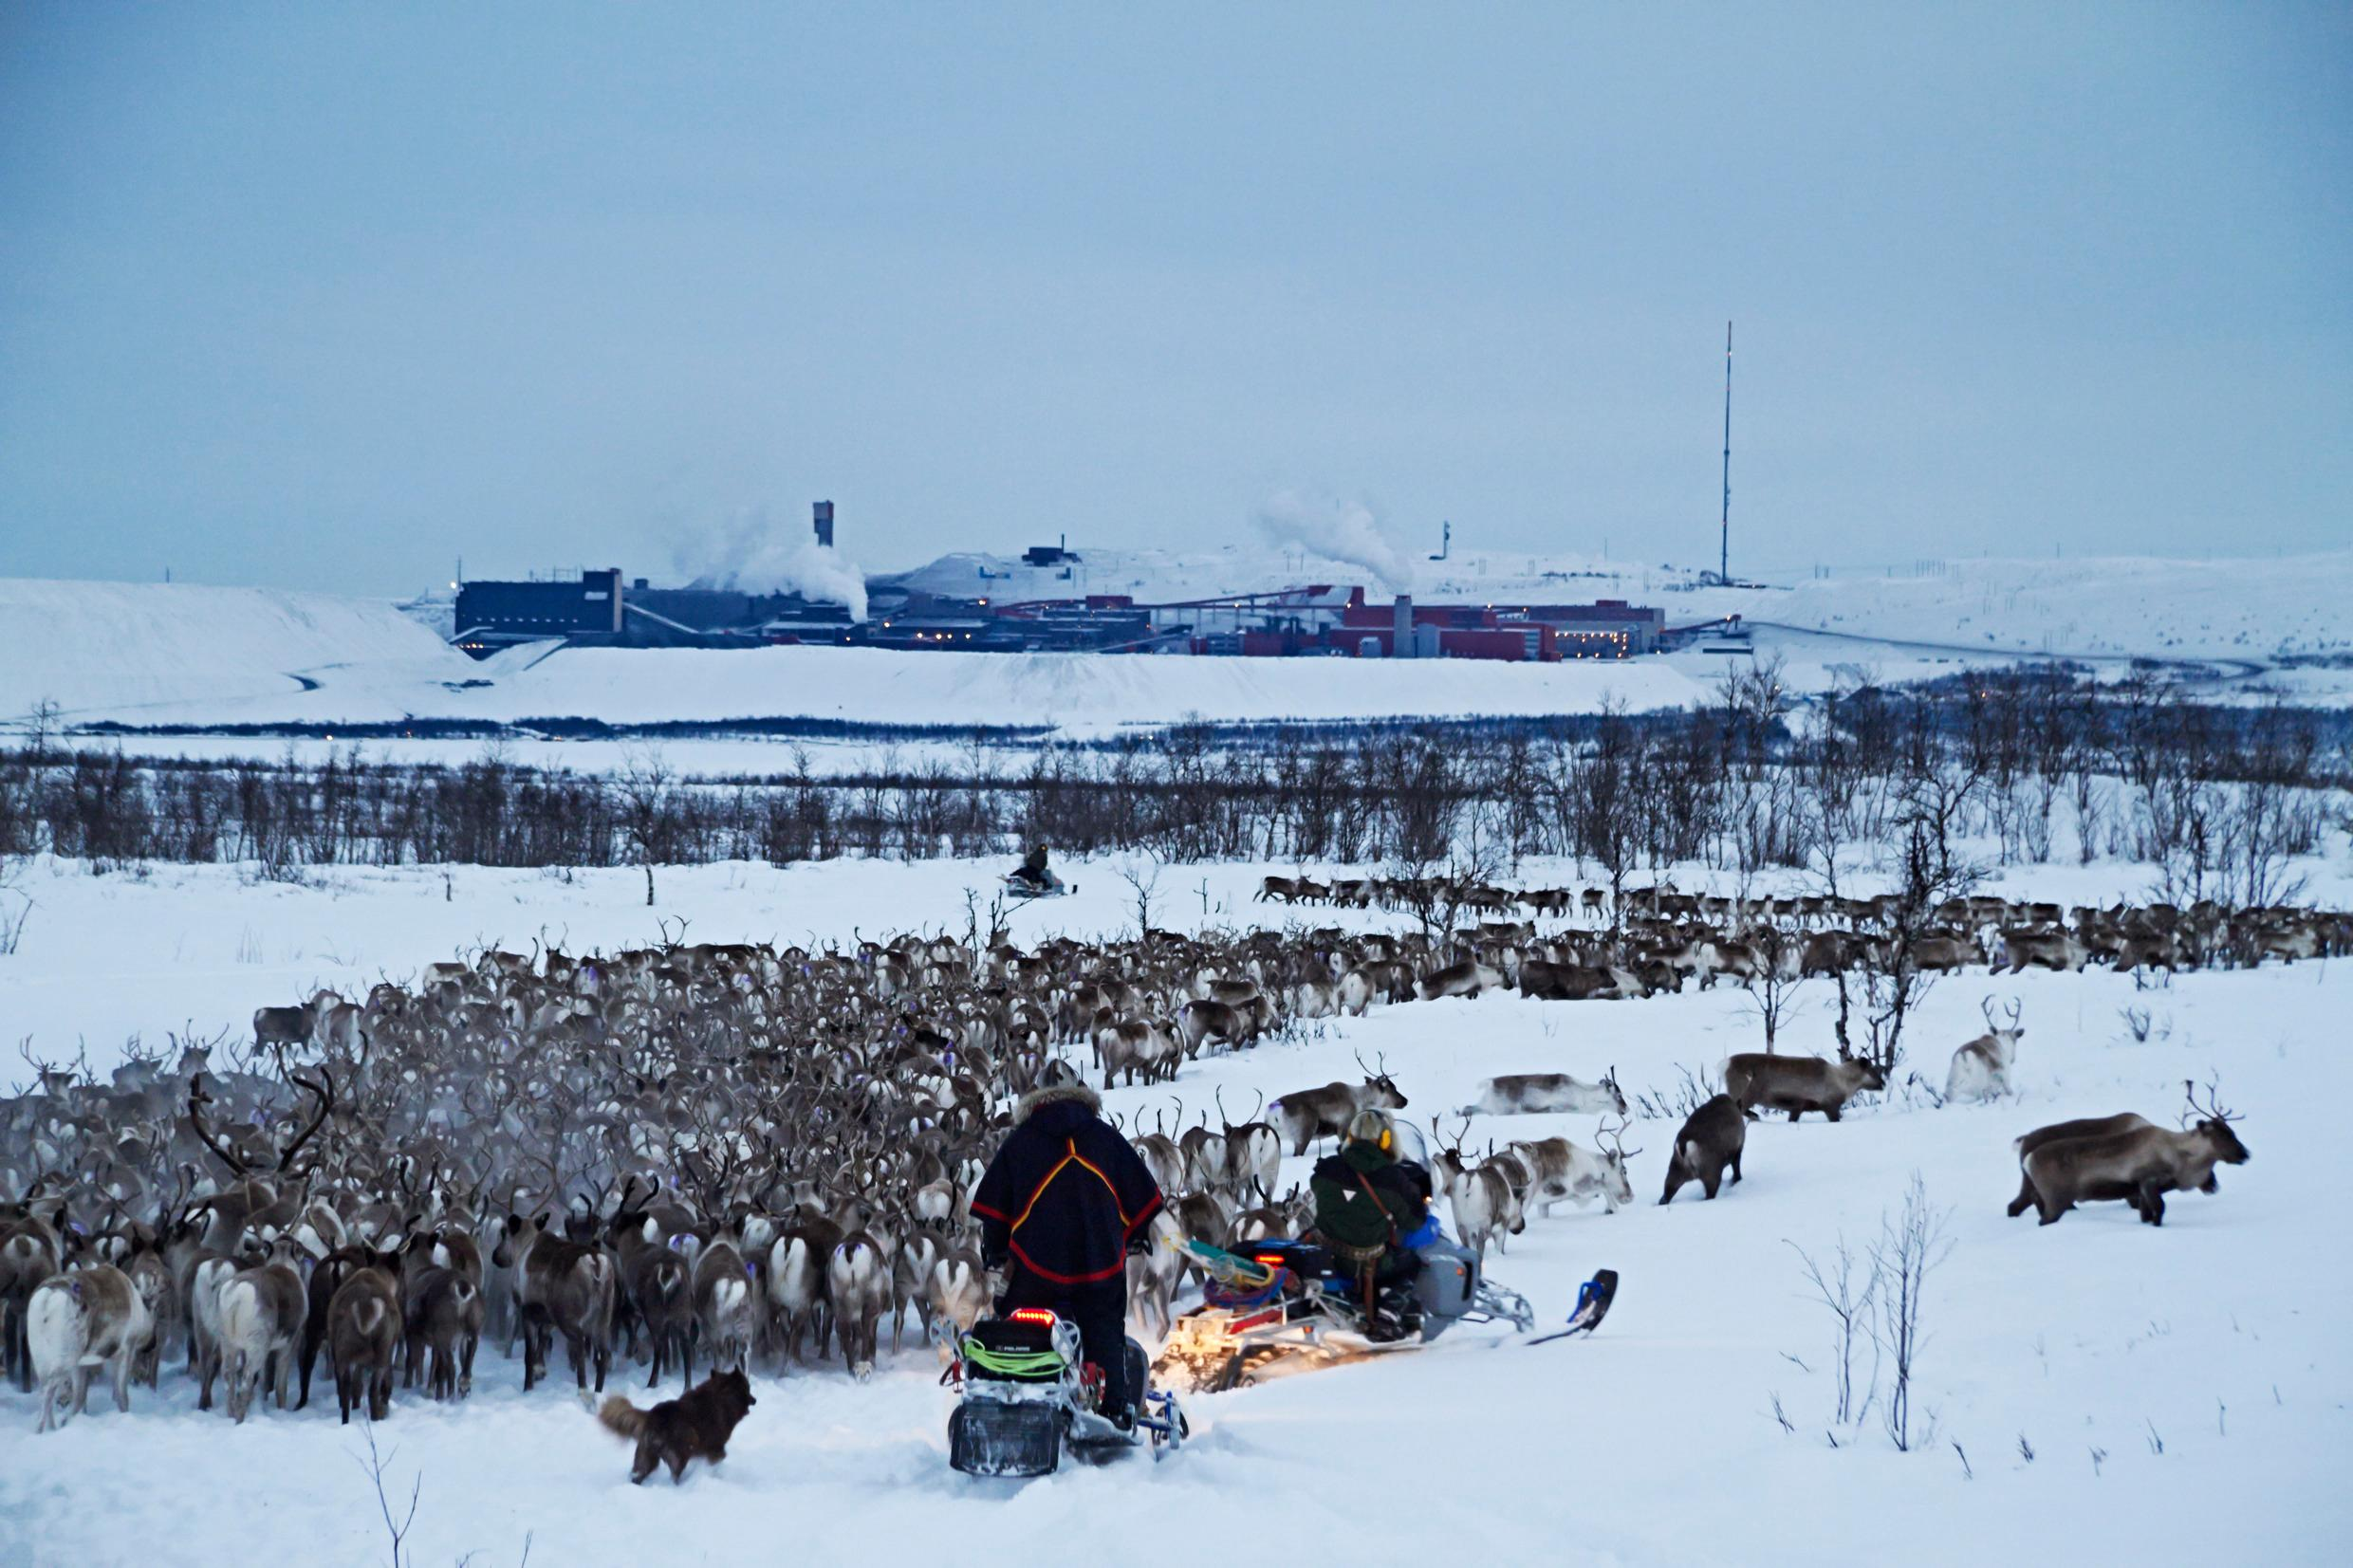 A large herd of reindeer being herded by two people on snowmobiles.